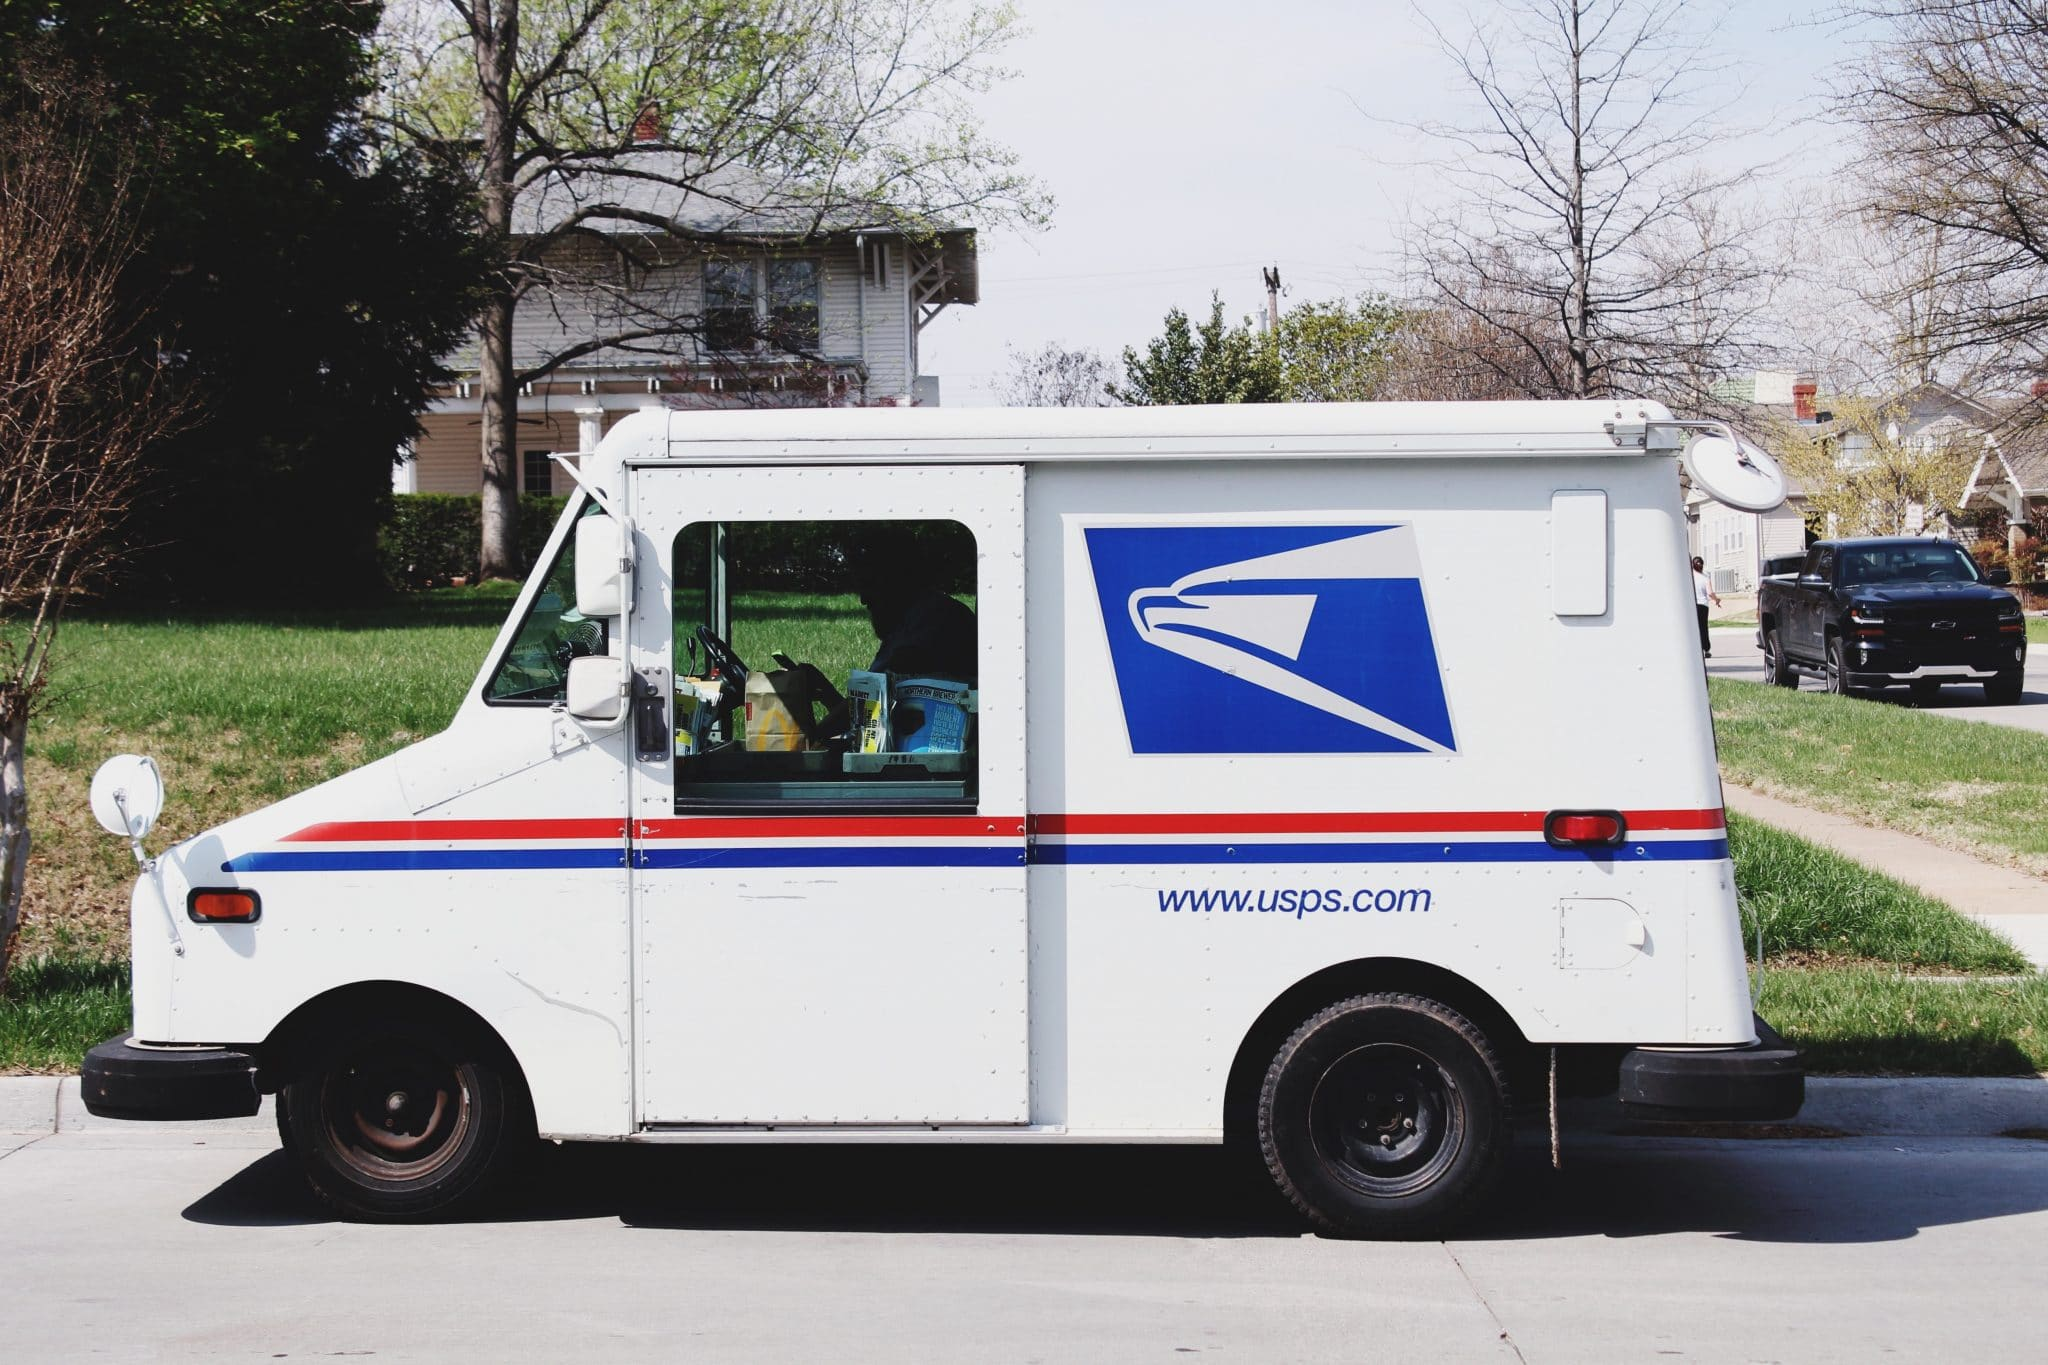 A United States Postal Service truck sitting outside on a suspiciously delightful day.